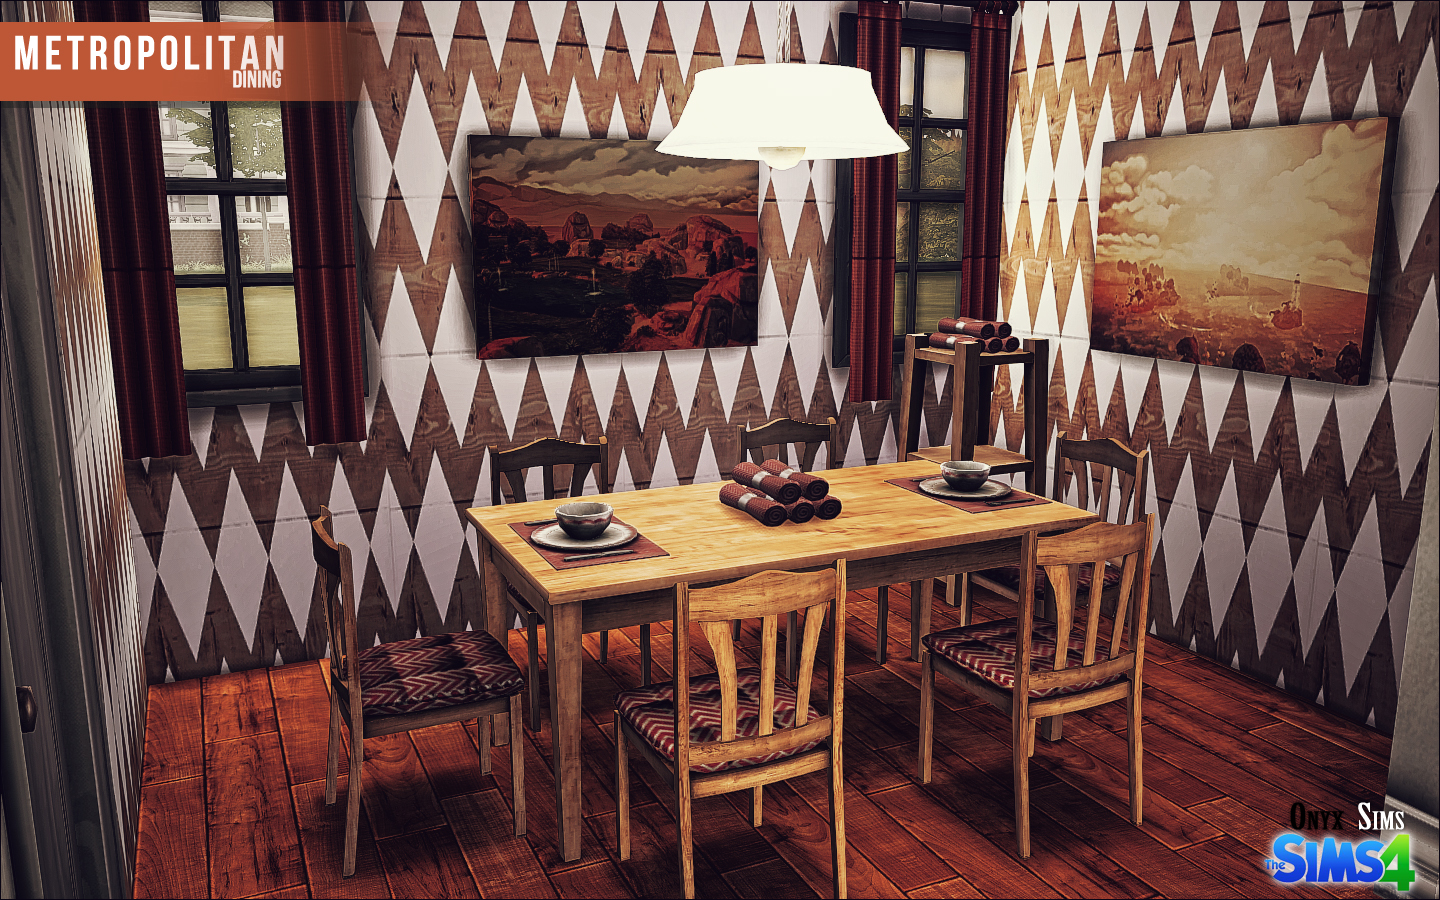 My Sims 4 Blog Metropolitan Dining Set By KiaraRawks